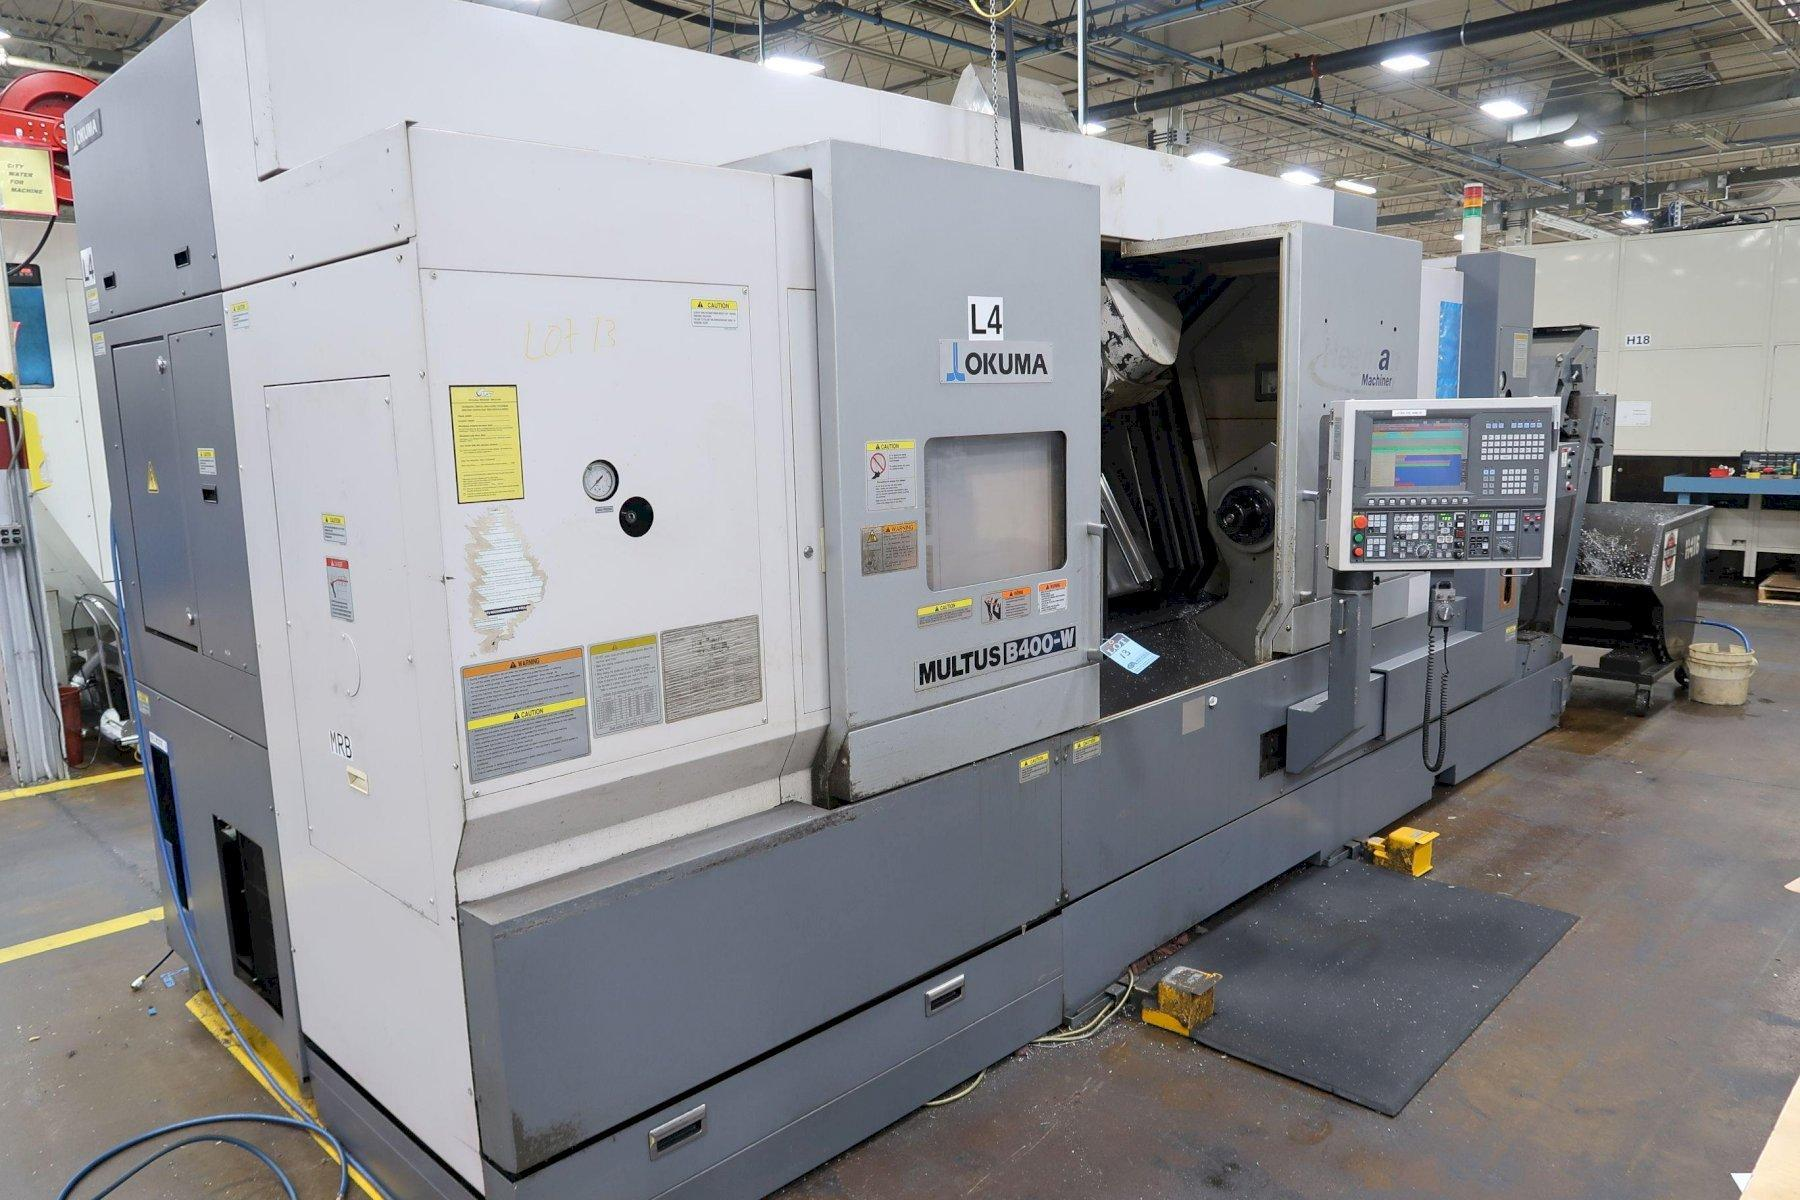 "Okuma Multus B400W (6) Axis CNC Lathe, OSP-200L, 15"" Chuck, 4.33"" Bar Cap, Milling, 40 ATC, Prog T/S, Probing, CTS, 28"" Swing, 60"" Centers, Low Hours, 2010 (2 Avail)"